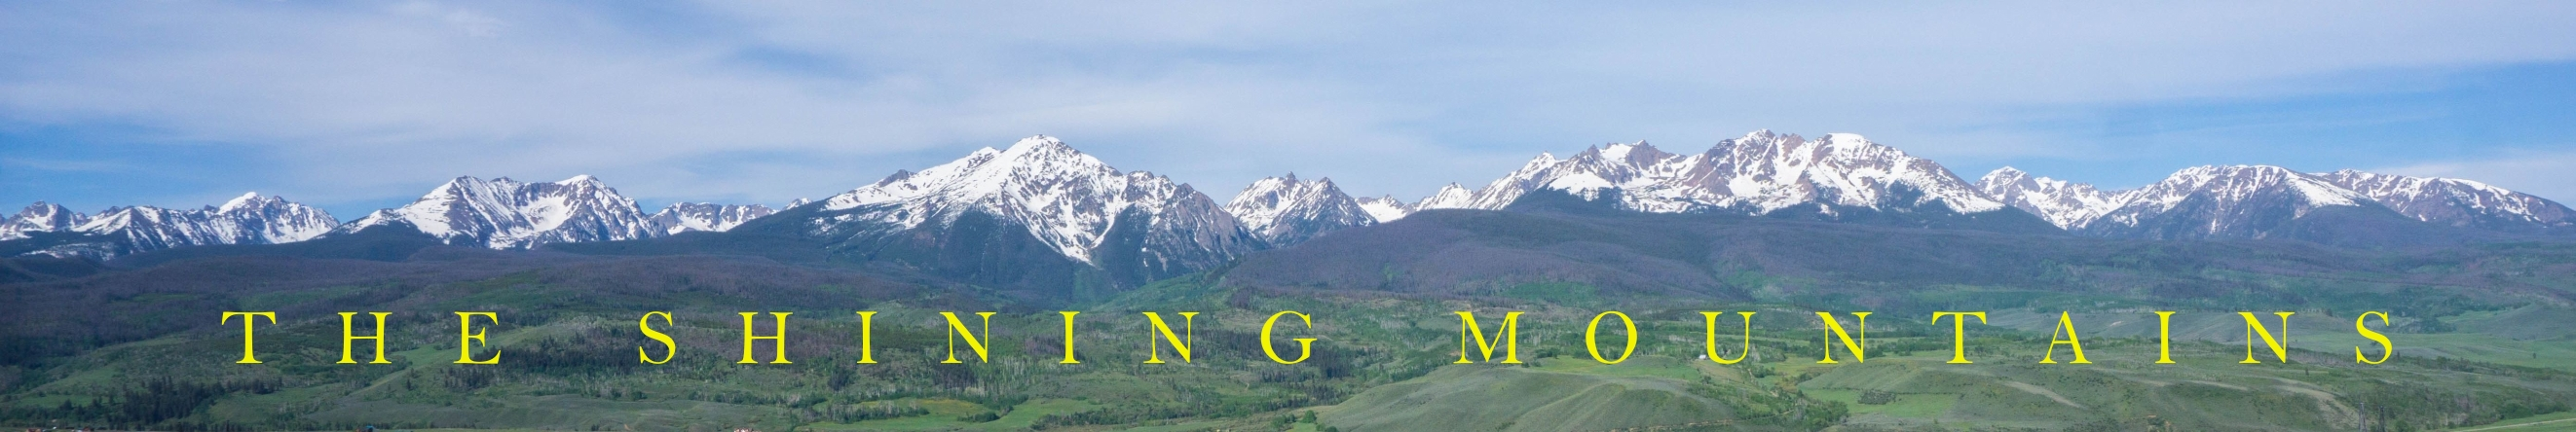 The Shining Mountains